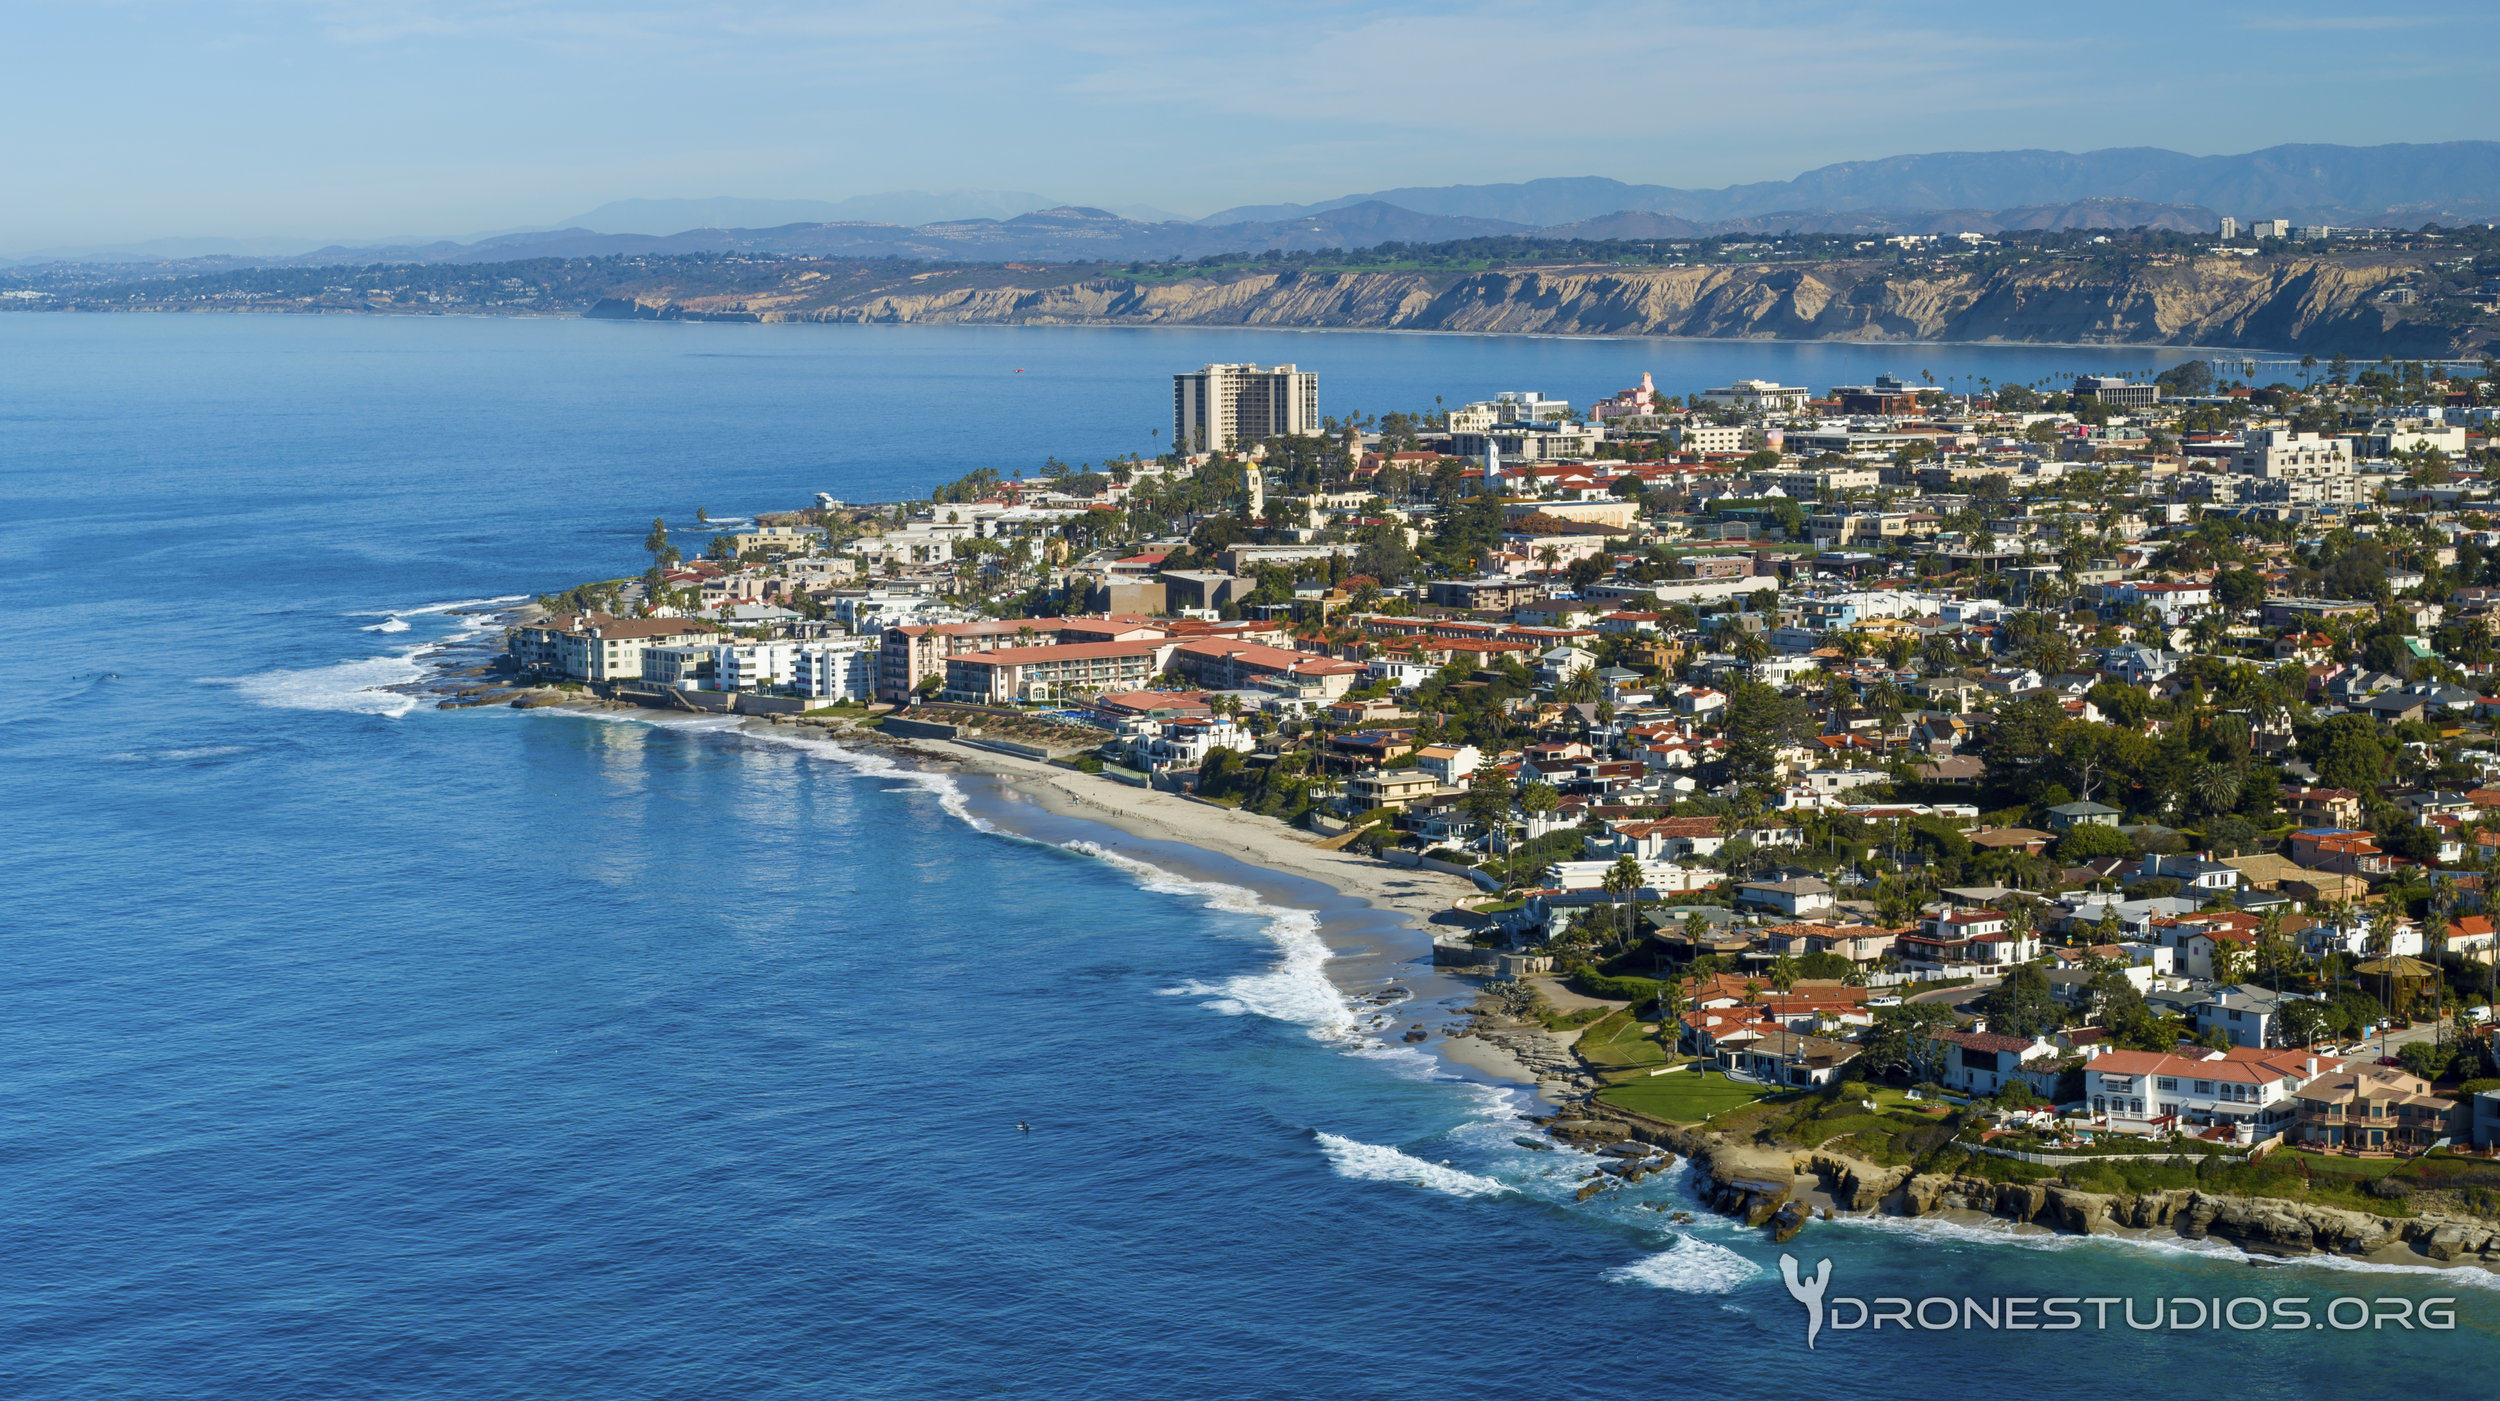 Drone photo of La Jolla and Torrey Pines